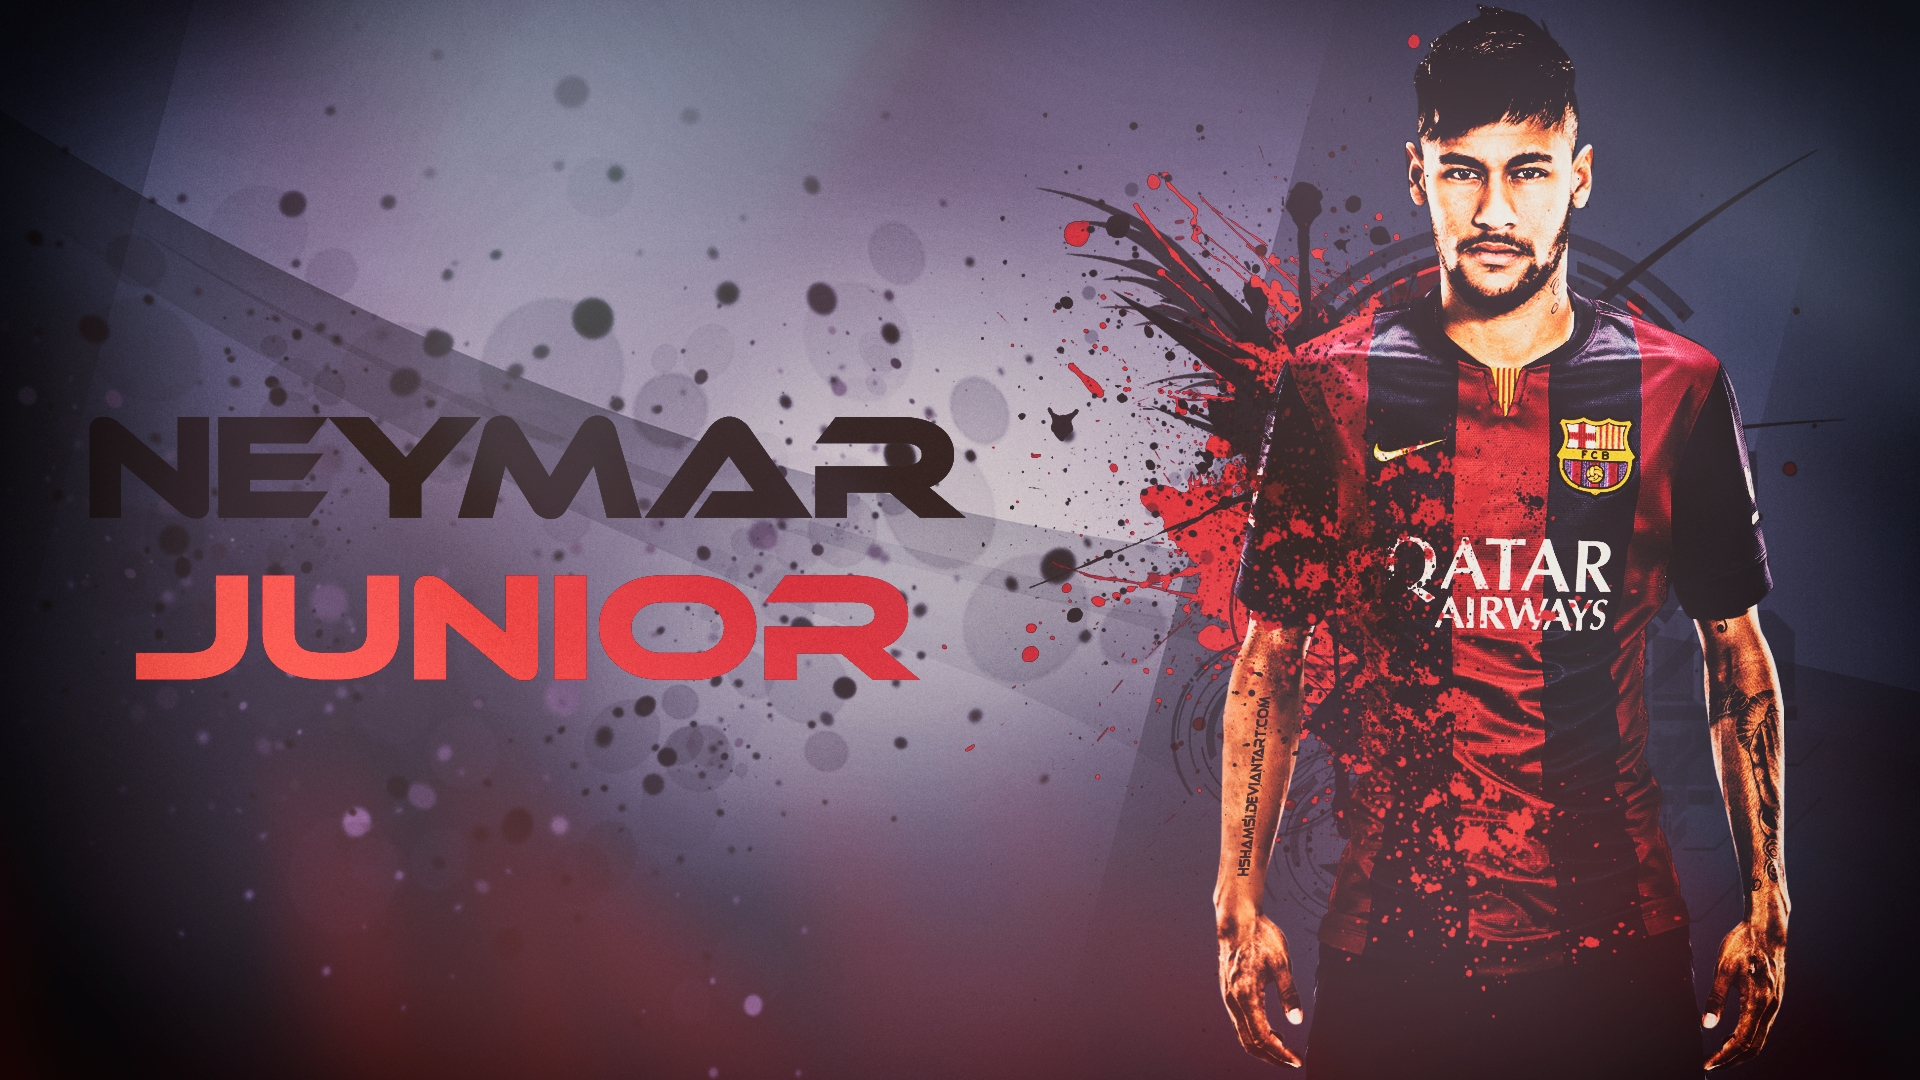 neymar hd wallpapers 2015 - wallpaper cave | images wallpapers